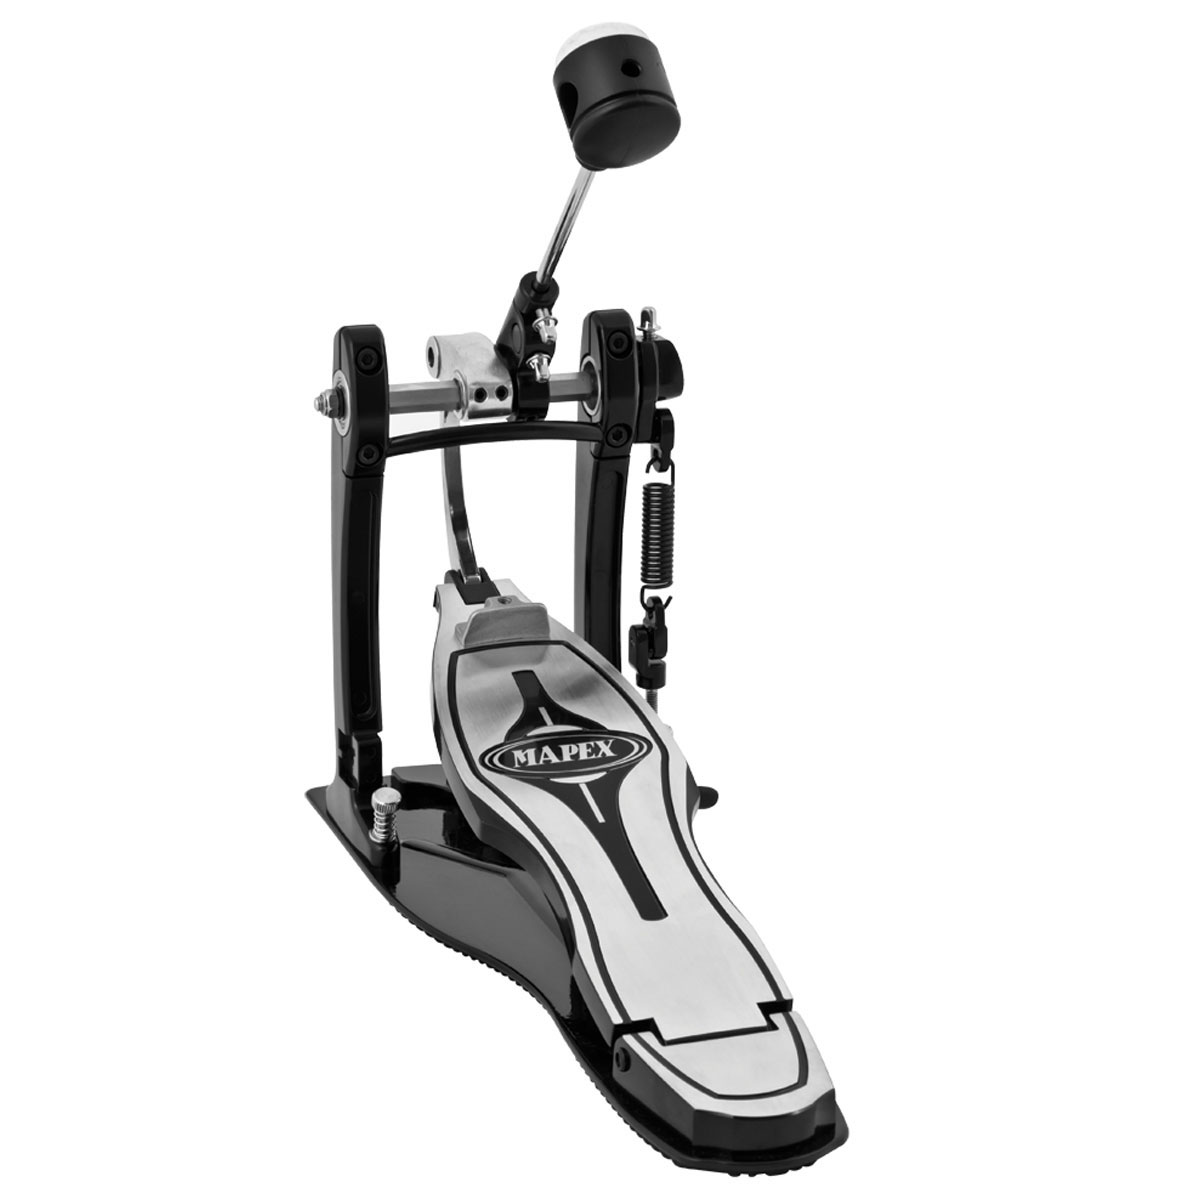 Mapex Raptor Single Direct Drive Bass Pedal